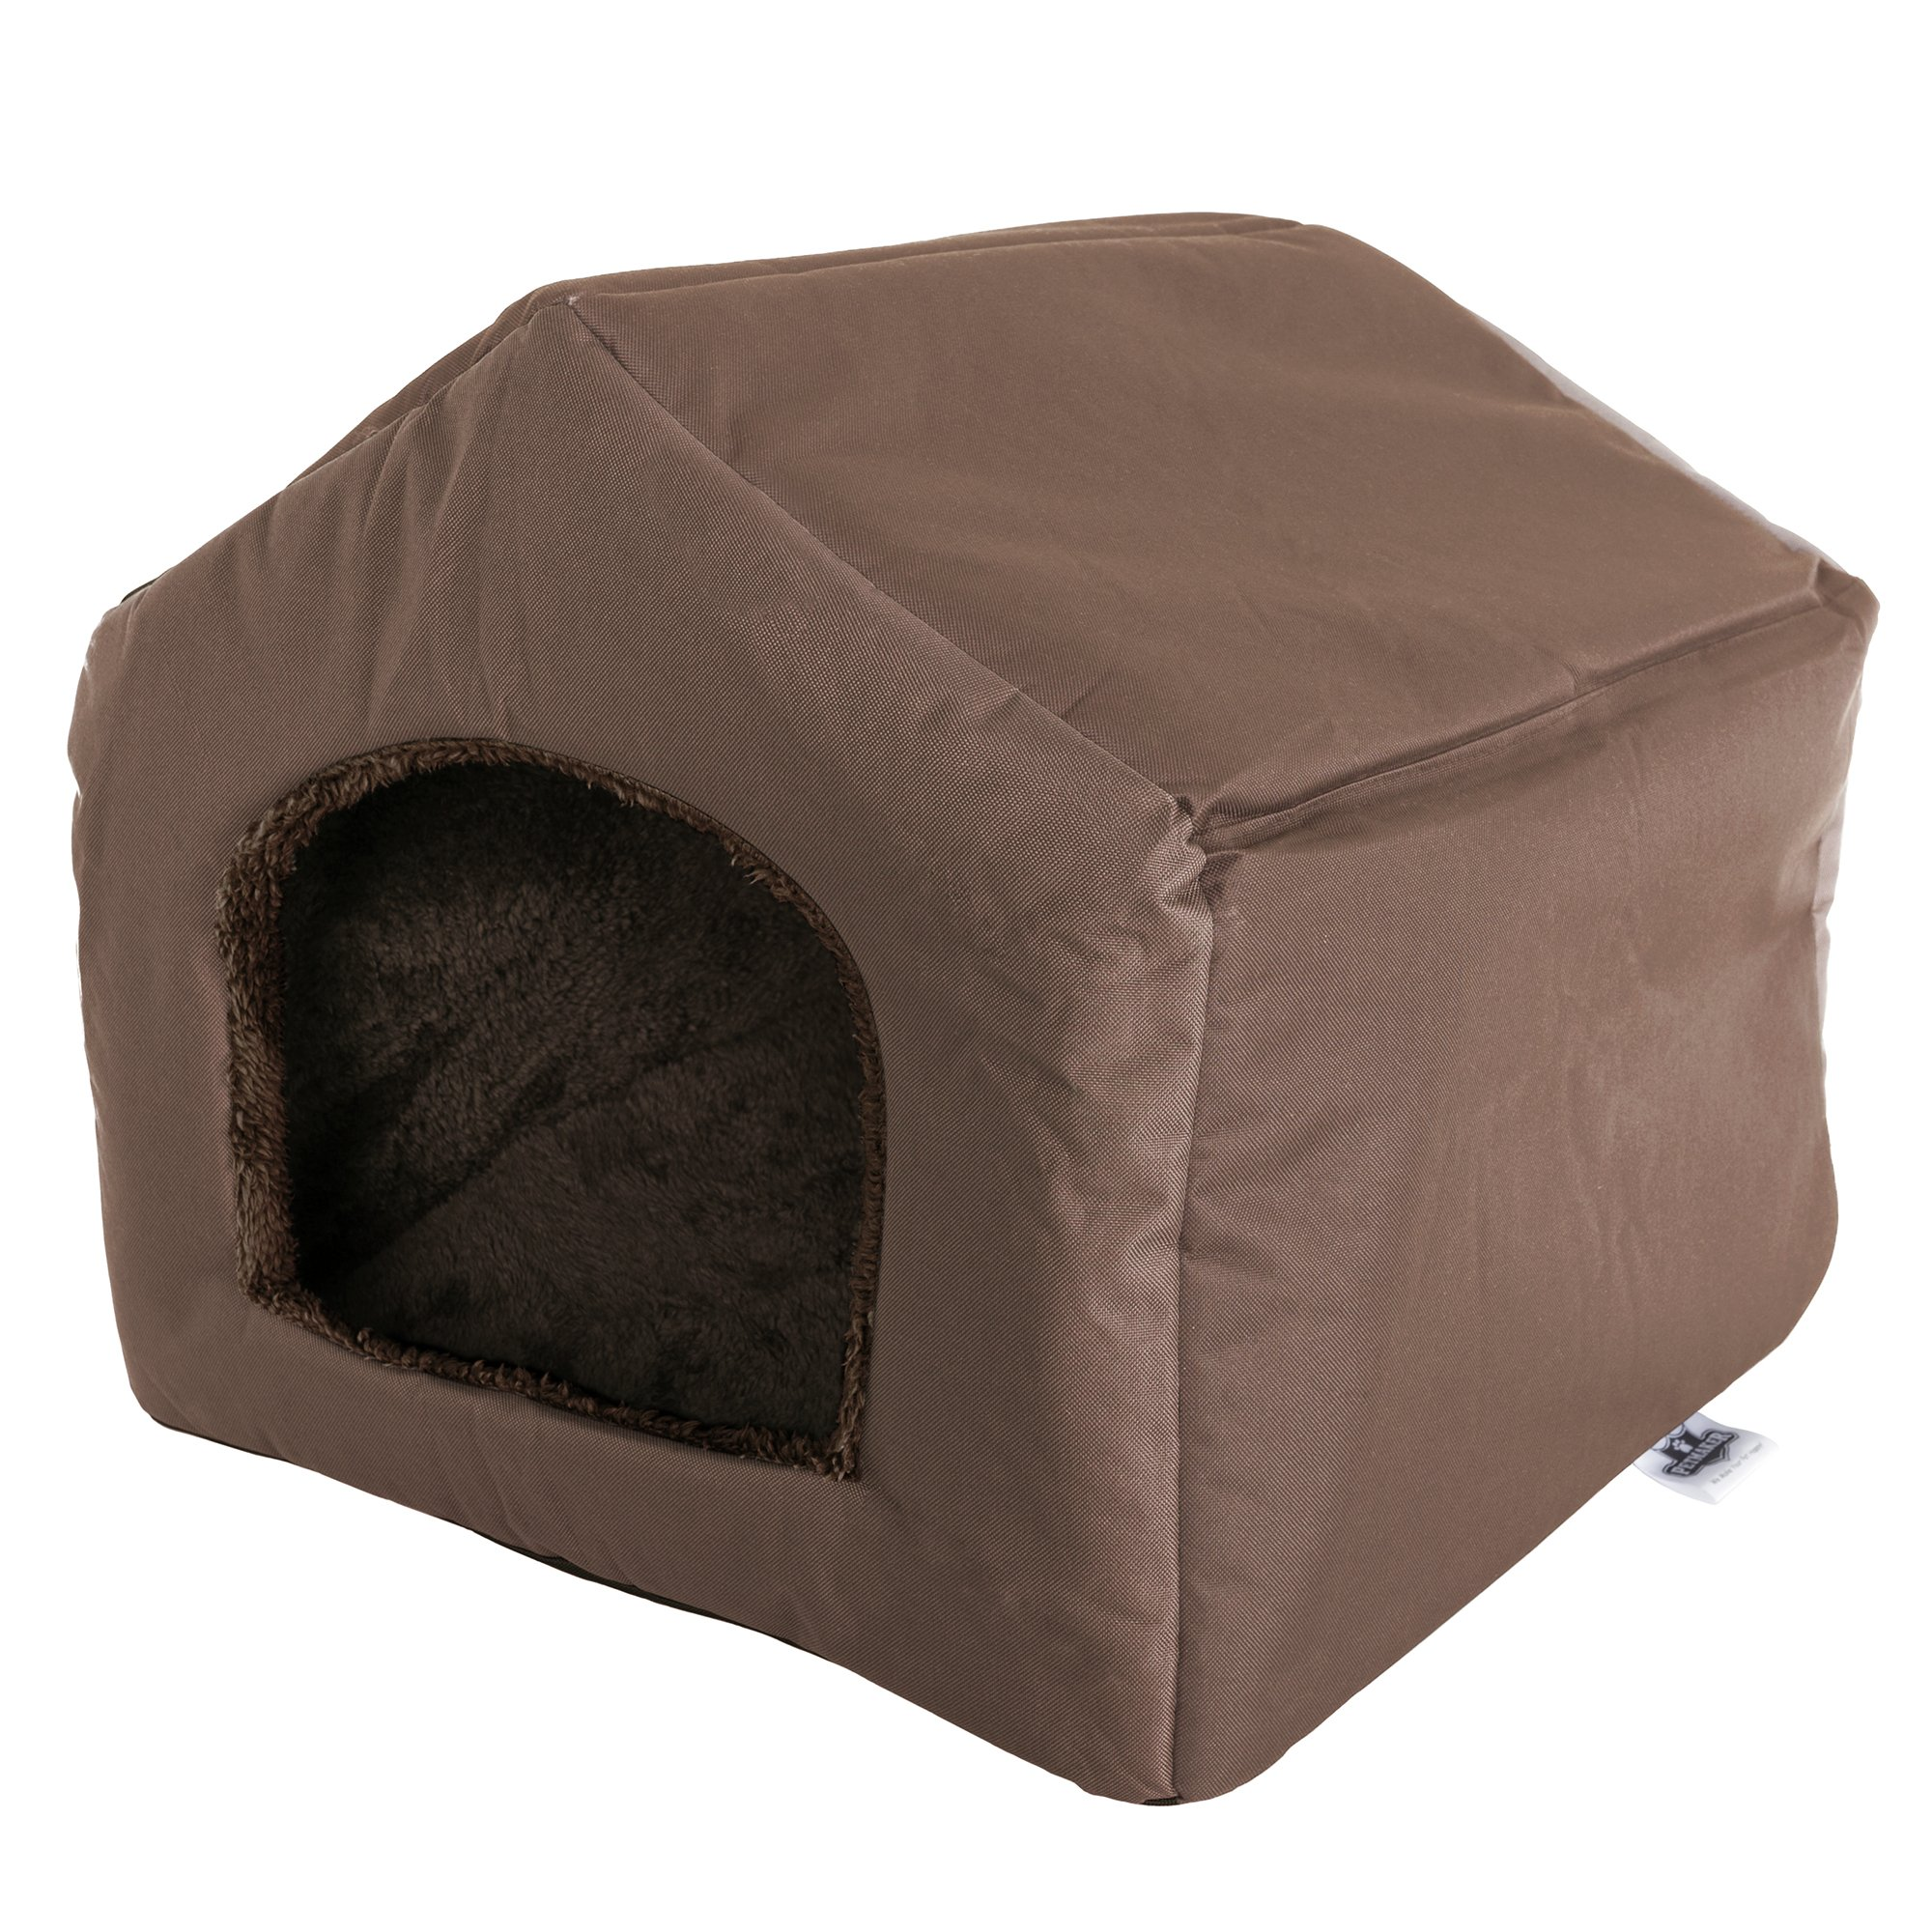 PETMAKER Cozy Cottage House Shaped Pet Bed, Brown, 19'' x 18. 5'' x 17''